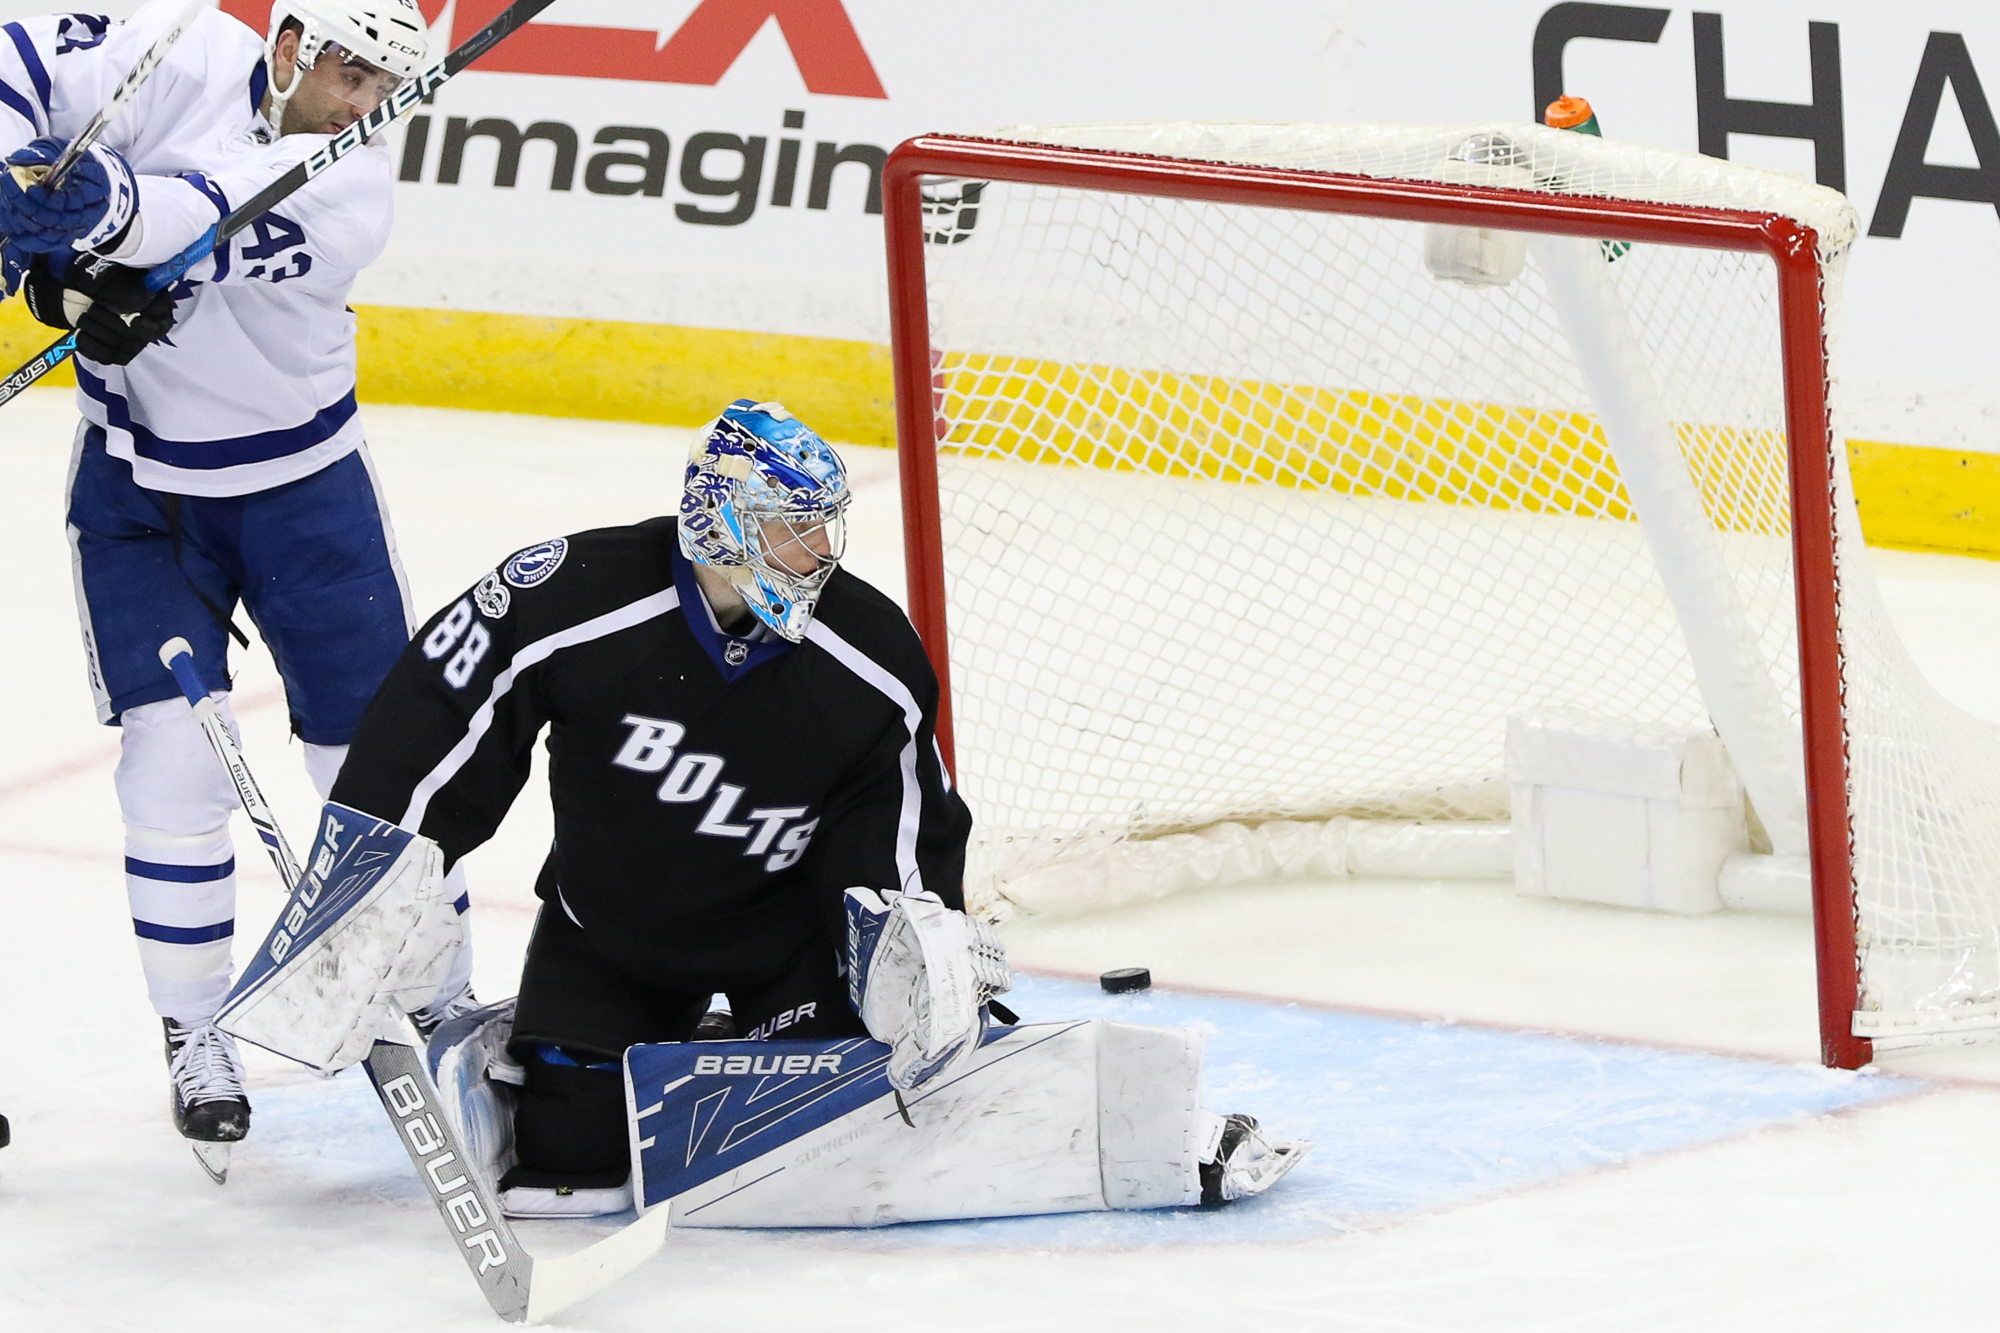 Andrei Vasilevskiy watches as a puck gets past him./Steven Muncie